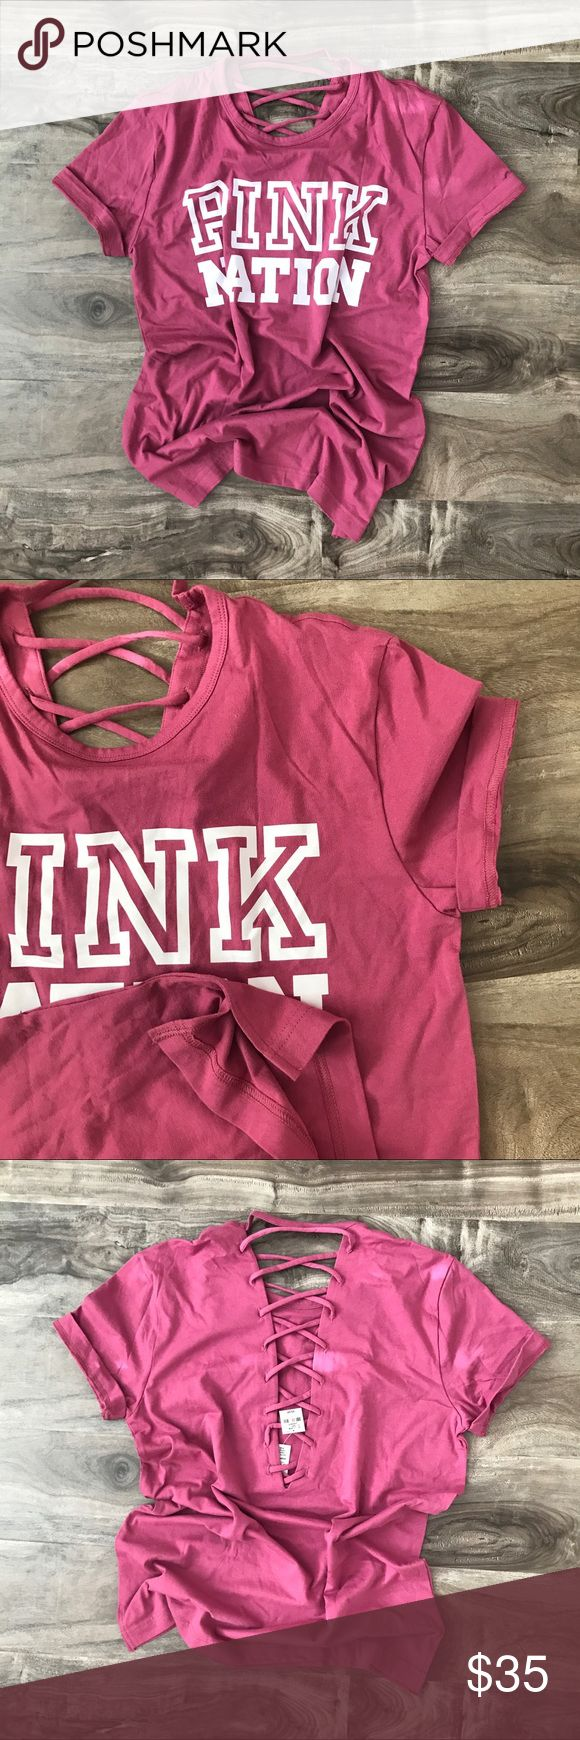 "• vs pink | lace up back tee shirt • Brand: VS PINK Size: Extra small, fits like a small Condition: NWT Description: PINK NATION, campus tee, lace up back. ➕Additional pictures upon request. ➕Pls ask ALL questions prior to purchasing. ➕Offers via offer button, only pls. ➖No trades, no holds, no ""lowest?"" PINK Victoria's Secret Tops Tees - Short Sleeve"